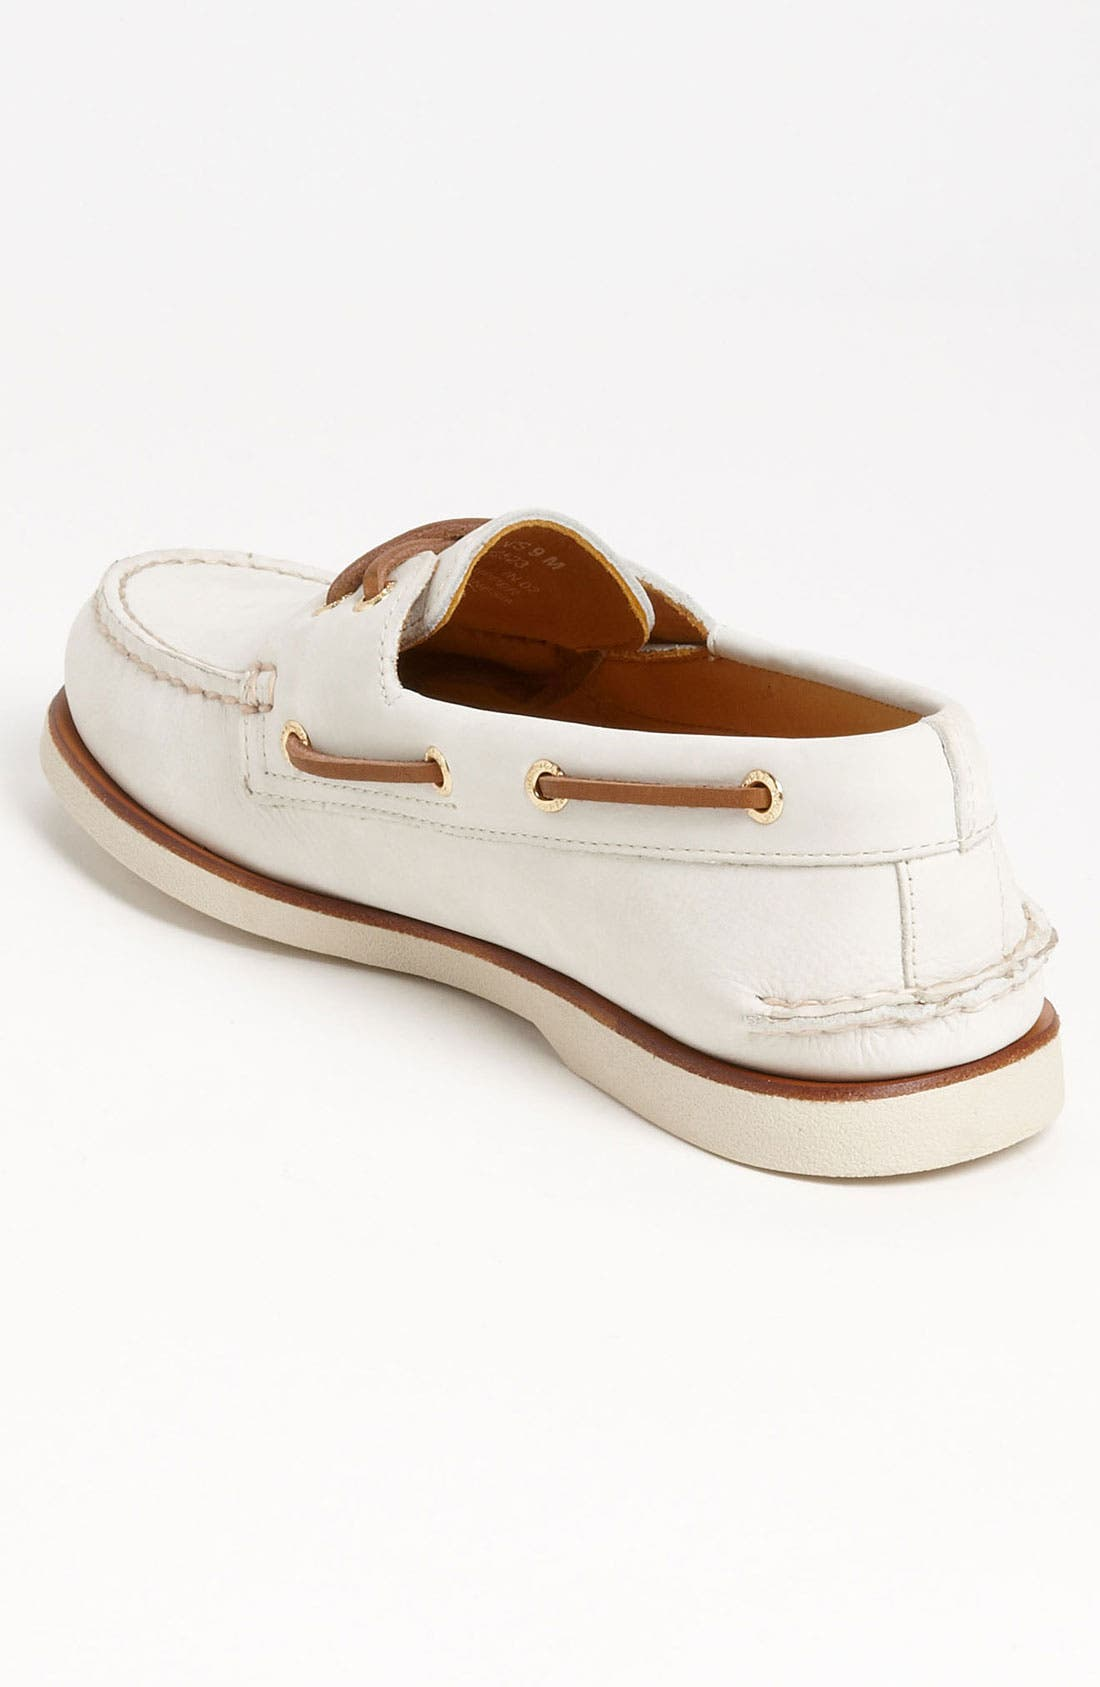 Alternate Image 2  - Sperry 'Authentic Original - Gold Cup' Boat Shoe